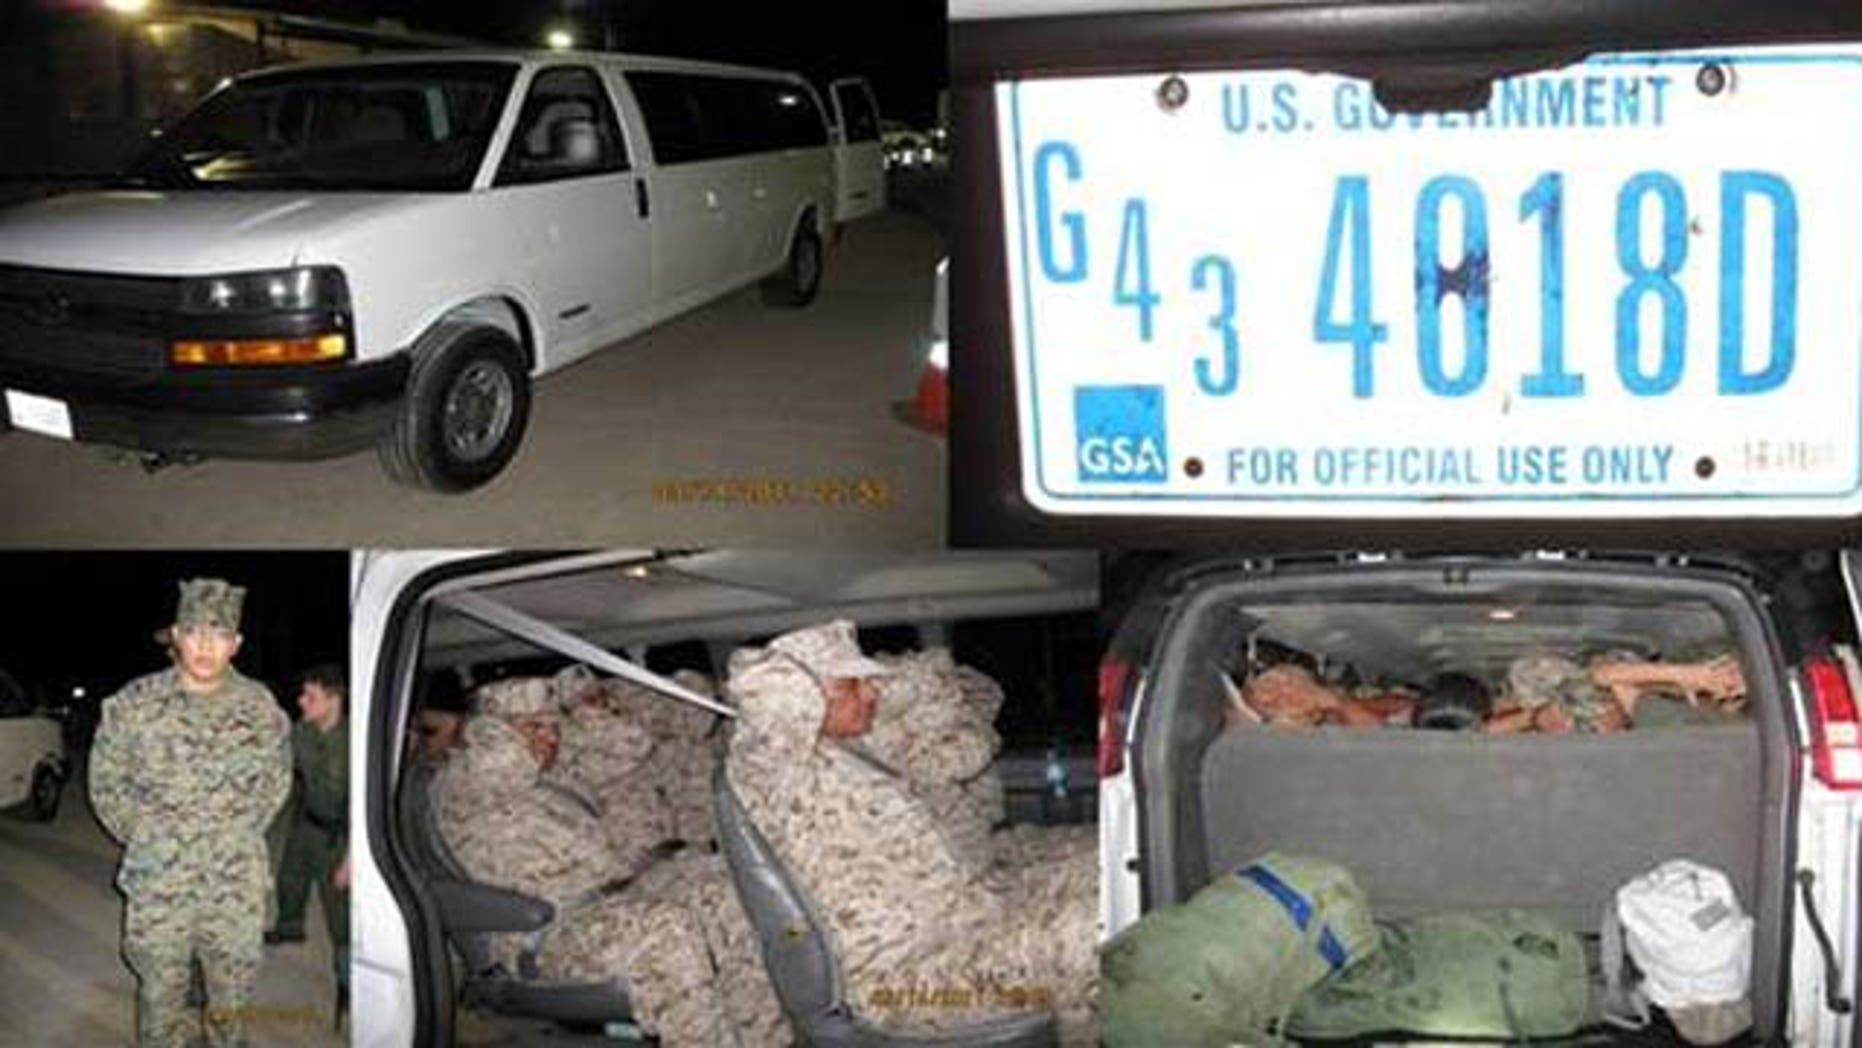 Clad in U.S. Marine uniforms, the illegal immigrants were apprehended at the Campo Border Patrol Westbound I-8 checkpoint at 11 p.m. on March 14 near Pine Valley, Calif., according to a March 15 report by California's El Centro Border Intelligence Center.